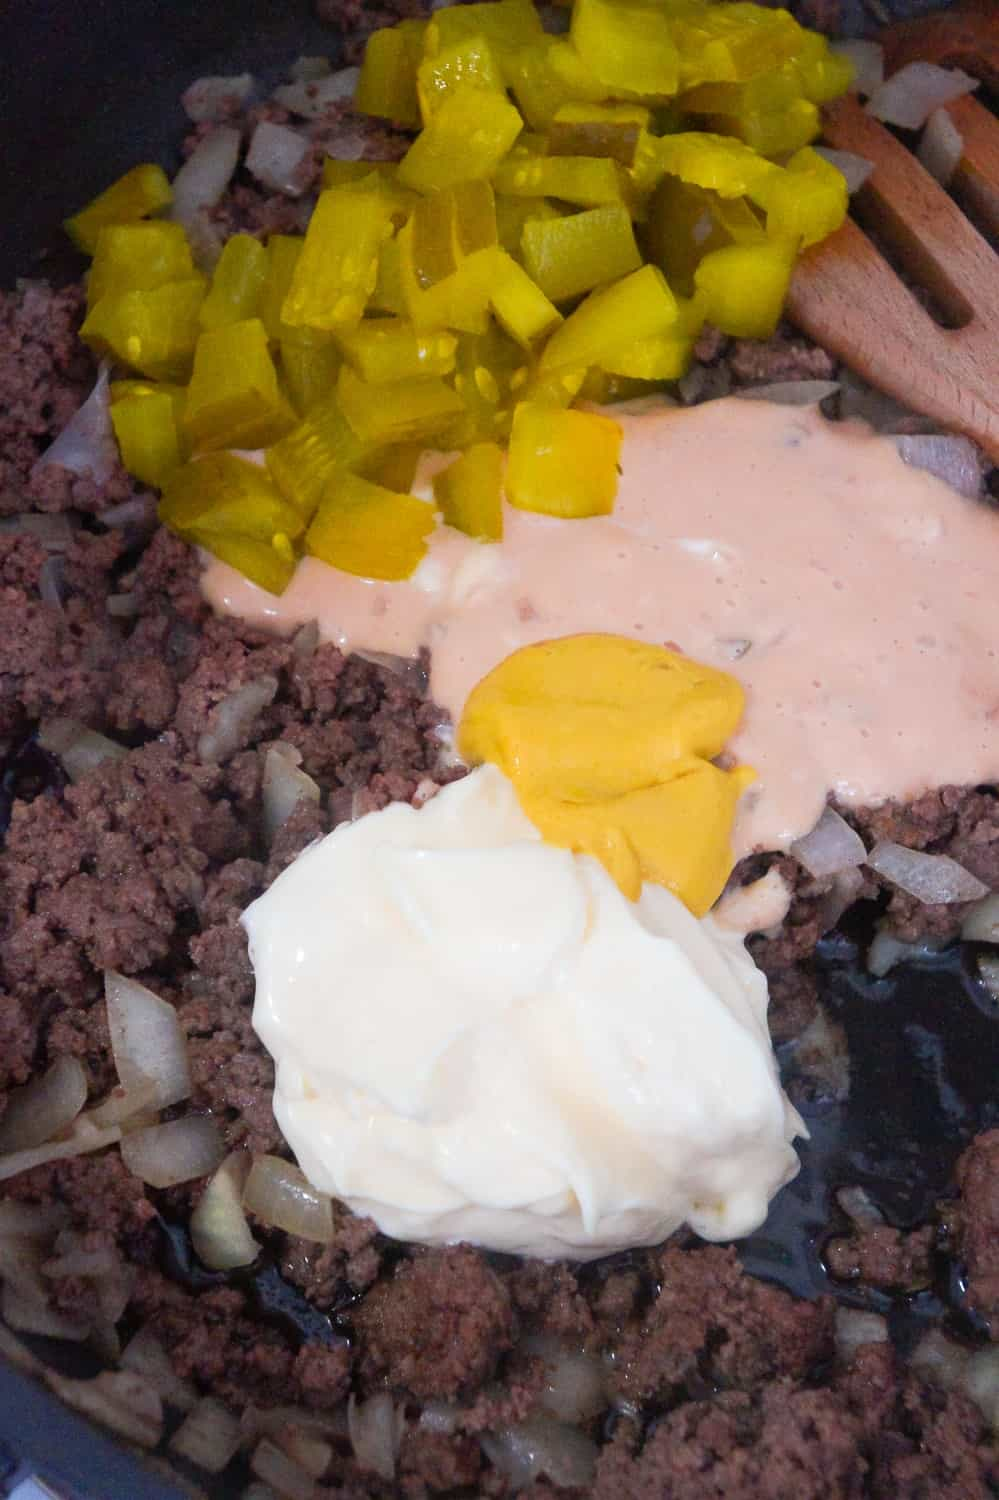 mayo, Thousand Islands dressing, mustard and diced dill pickles added to cooked ground beef